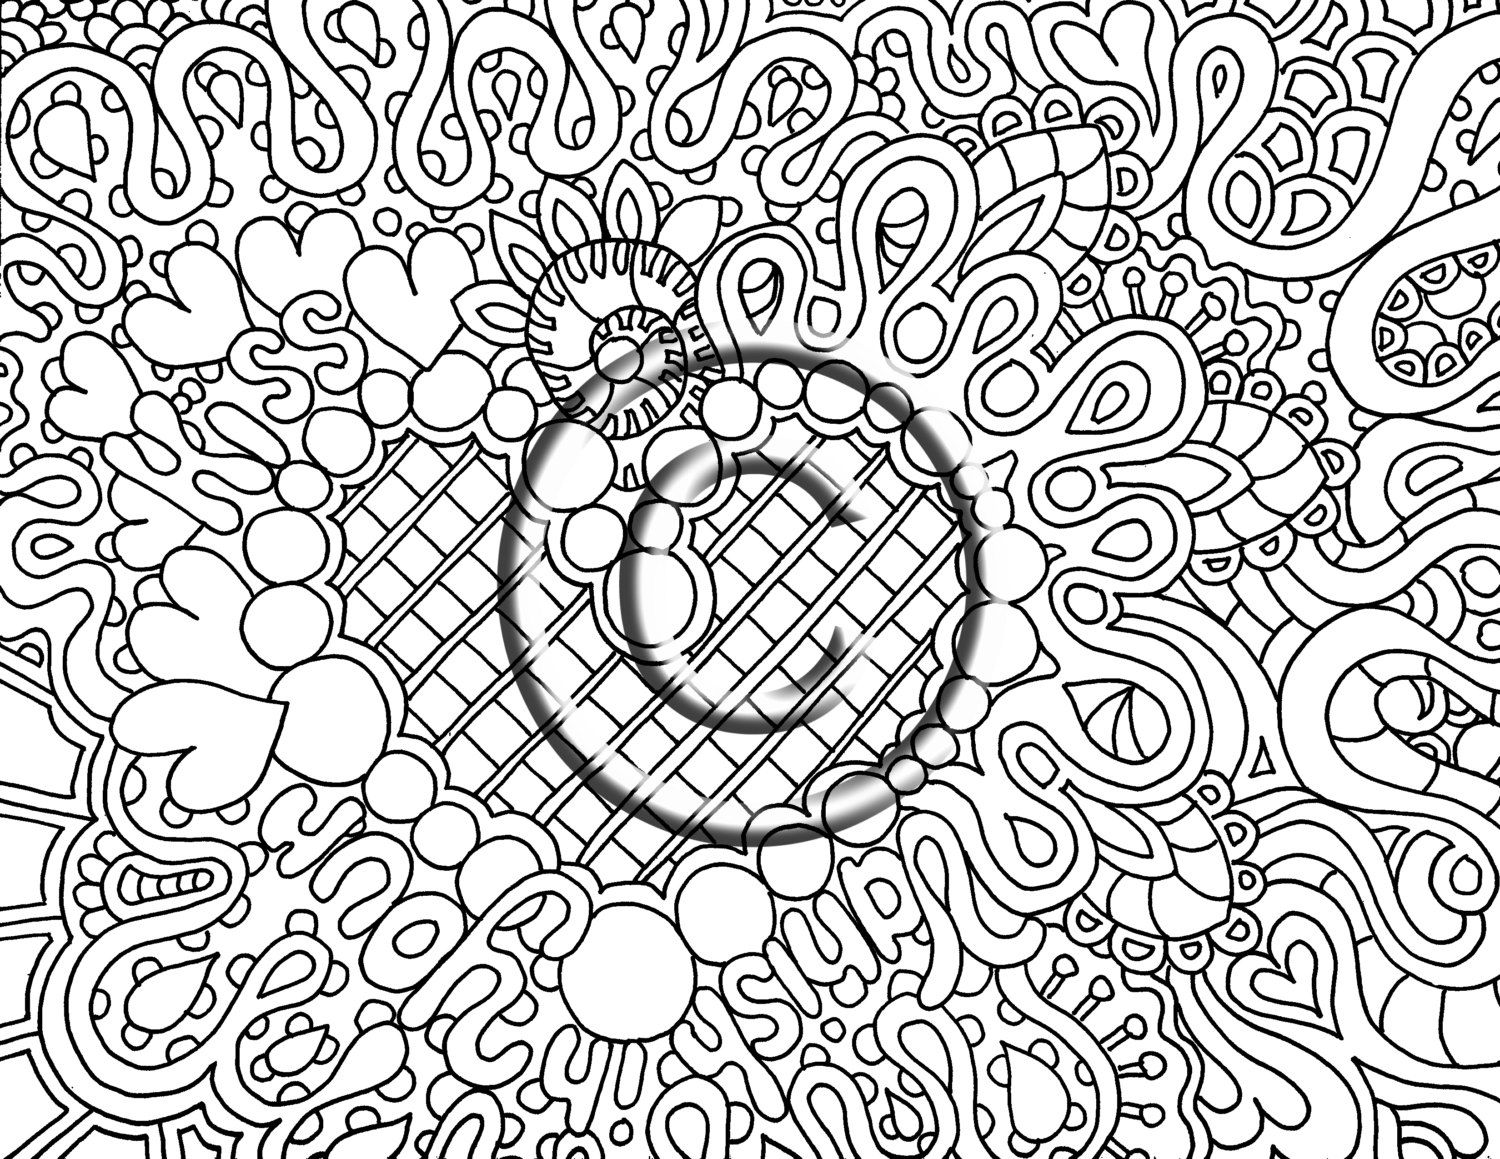 digital download coloring page hand drawn zentangle inspired psychedelic vanish in your kiss zendoodle